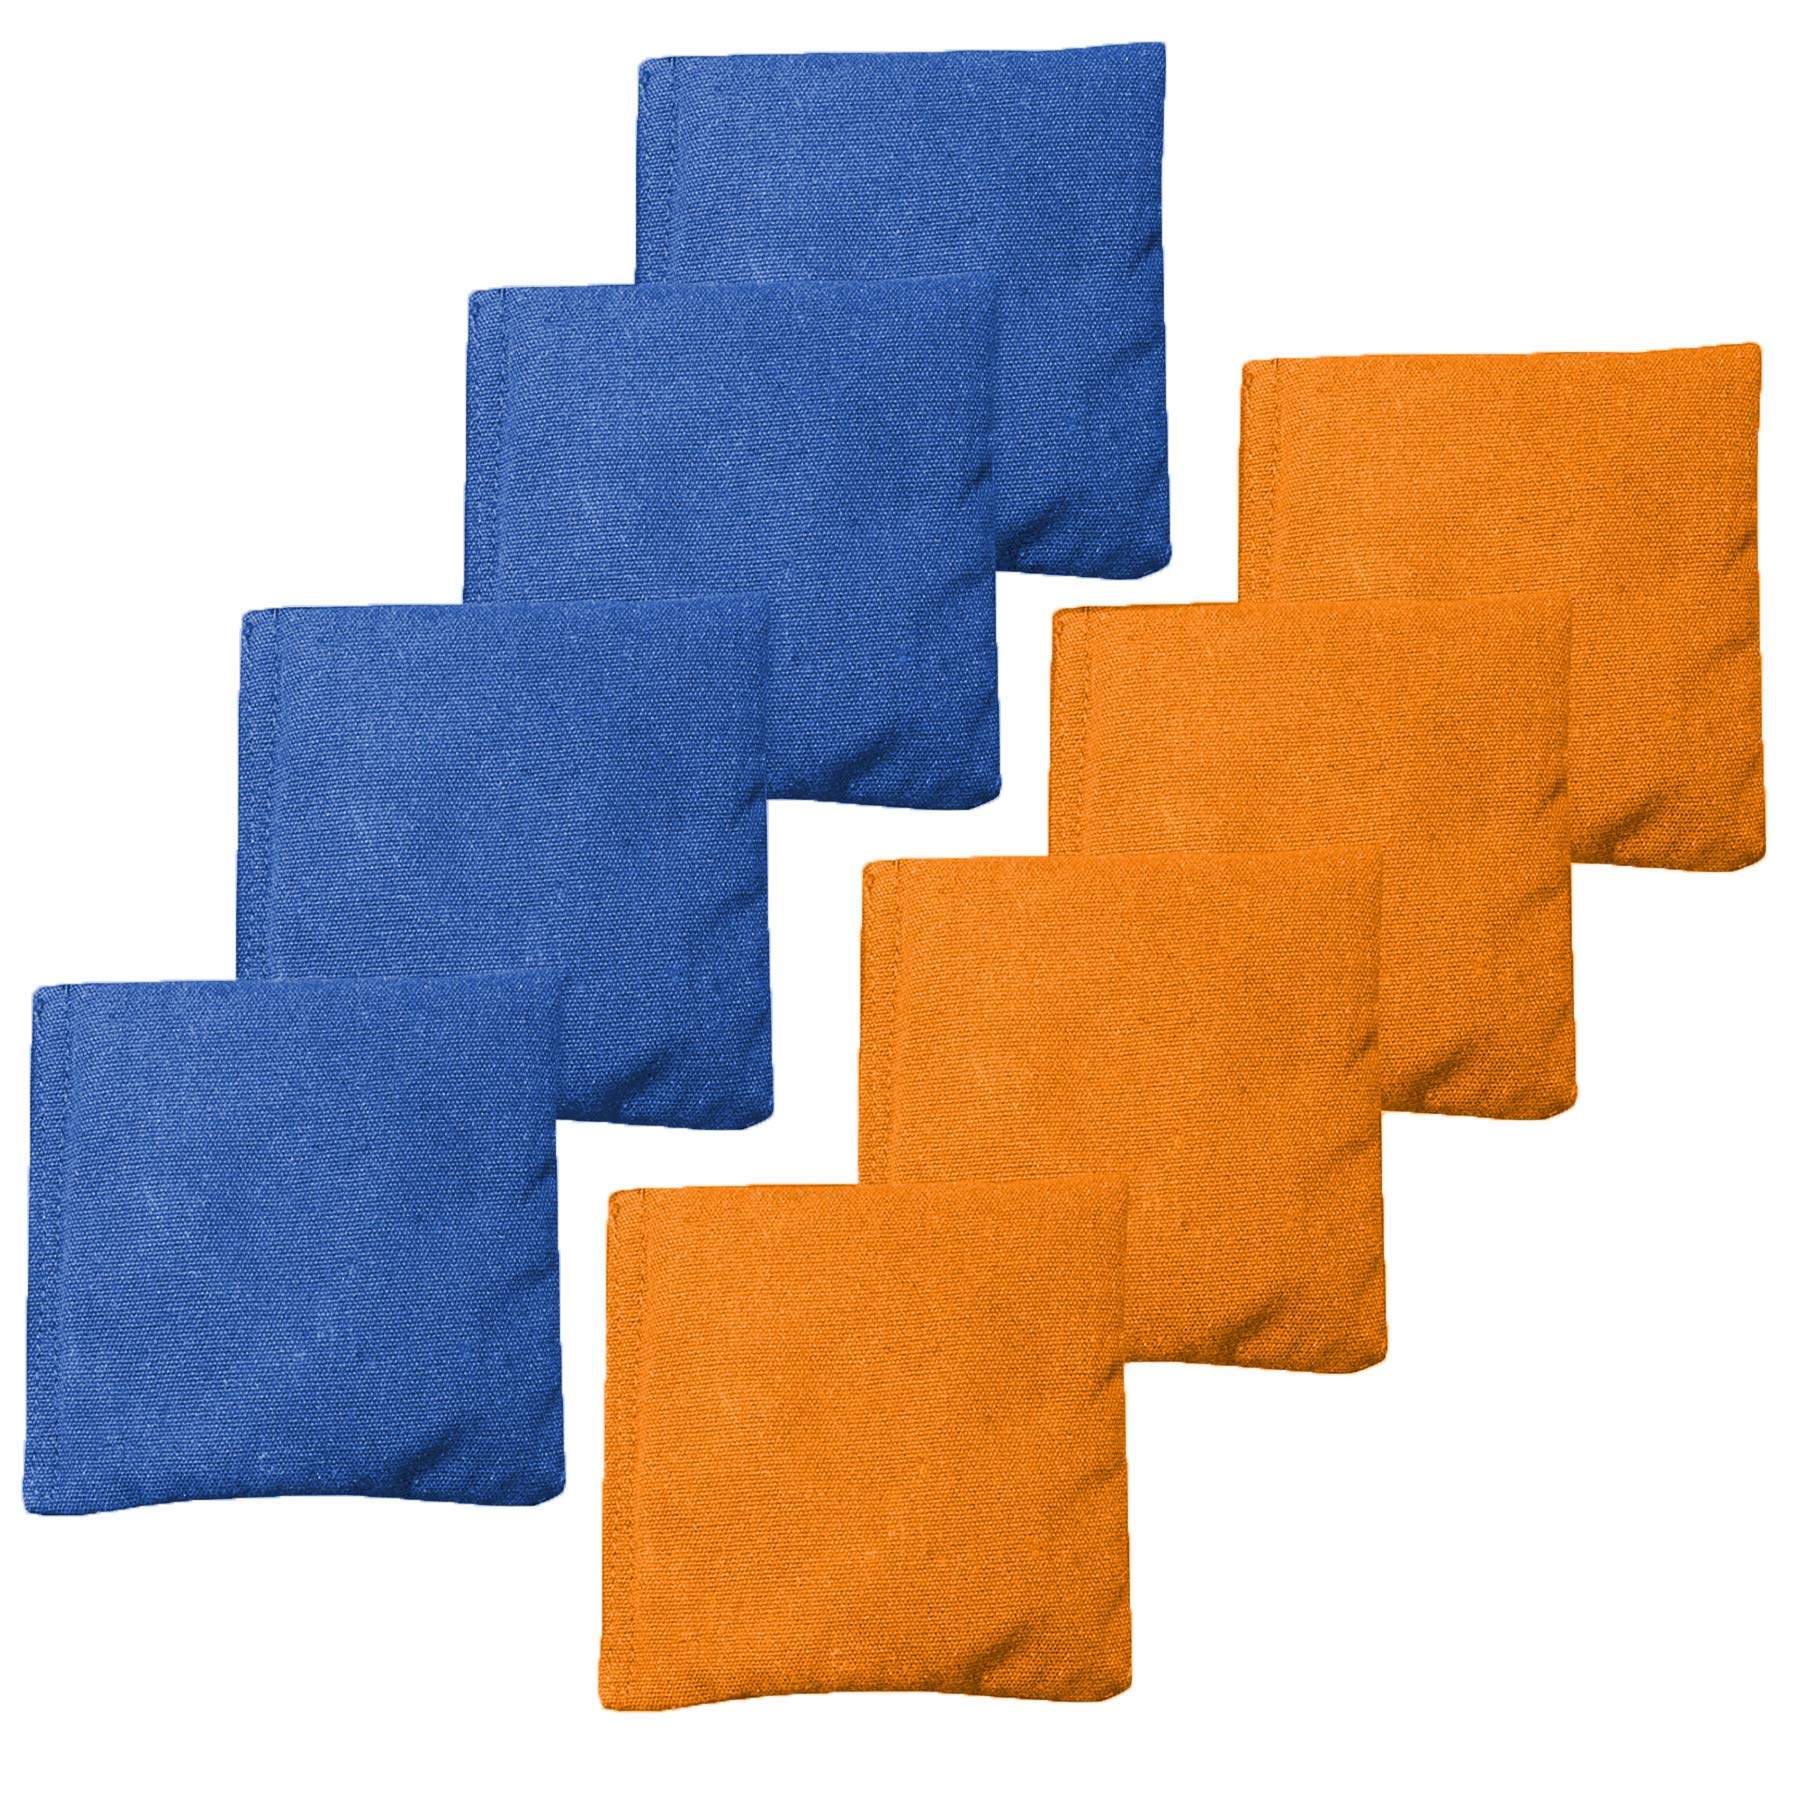 All Weather Cornhole Bean Bags Set of 8 - Duck Cloth, Regulation Size & Weight - Orange & Royal Blue